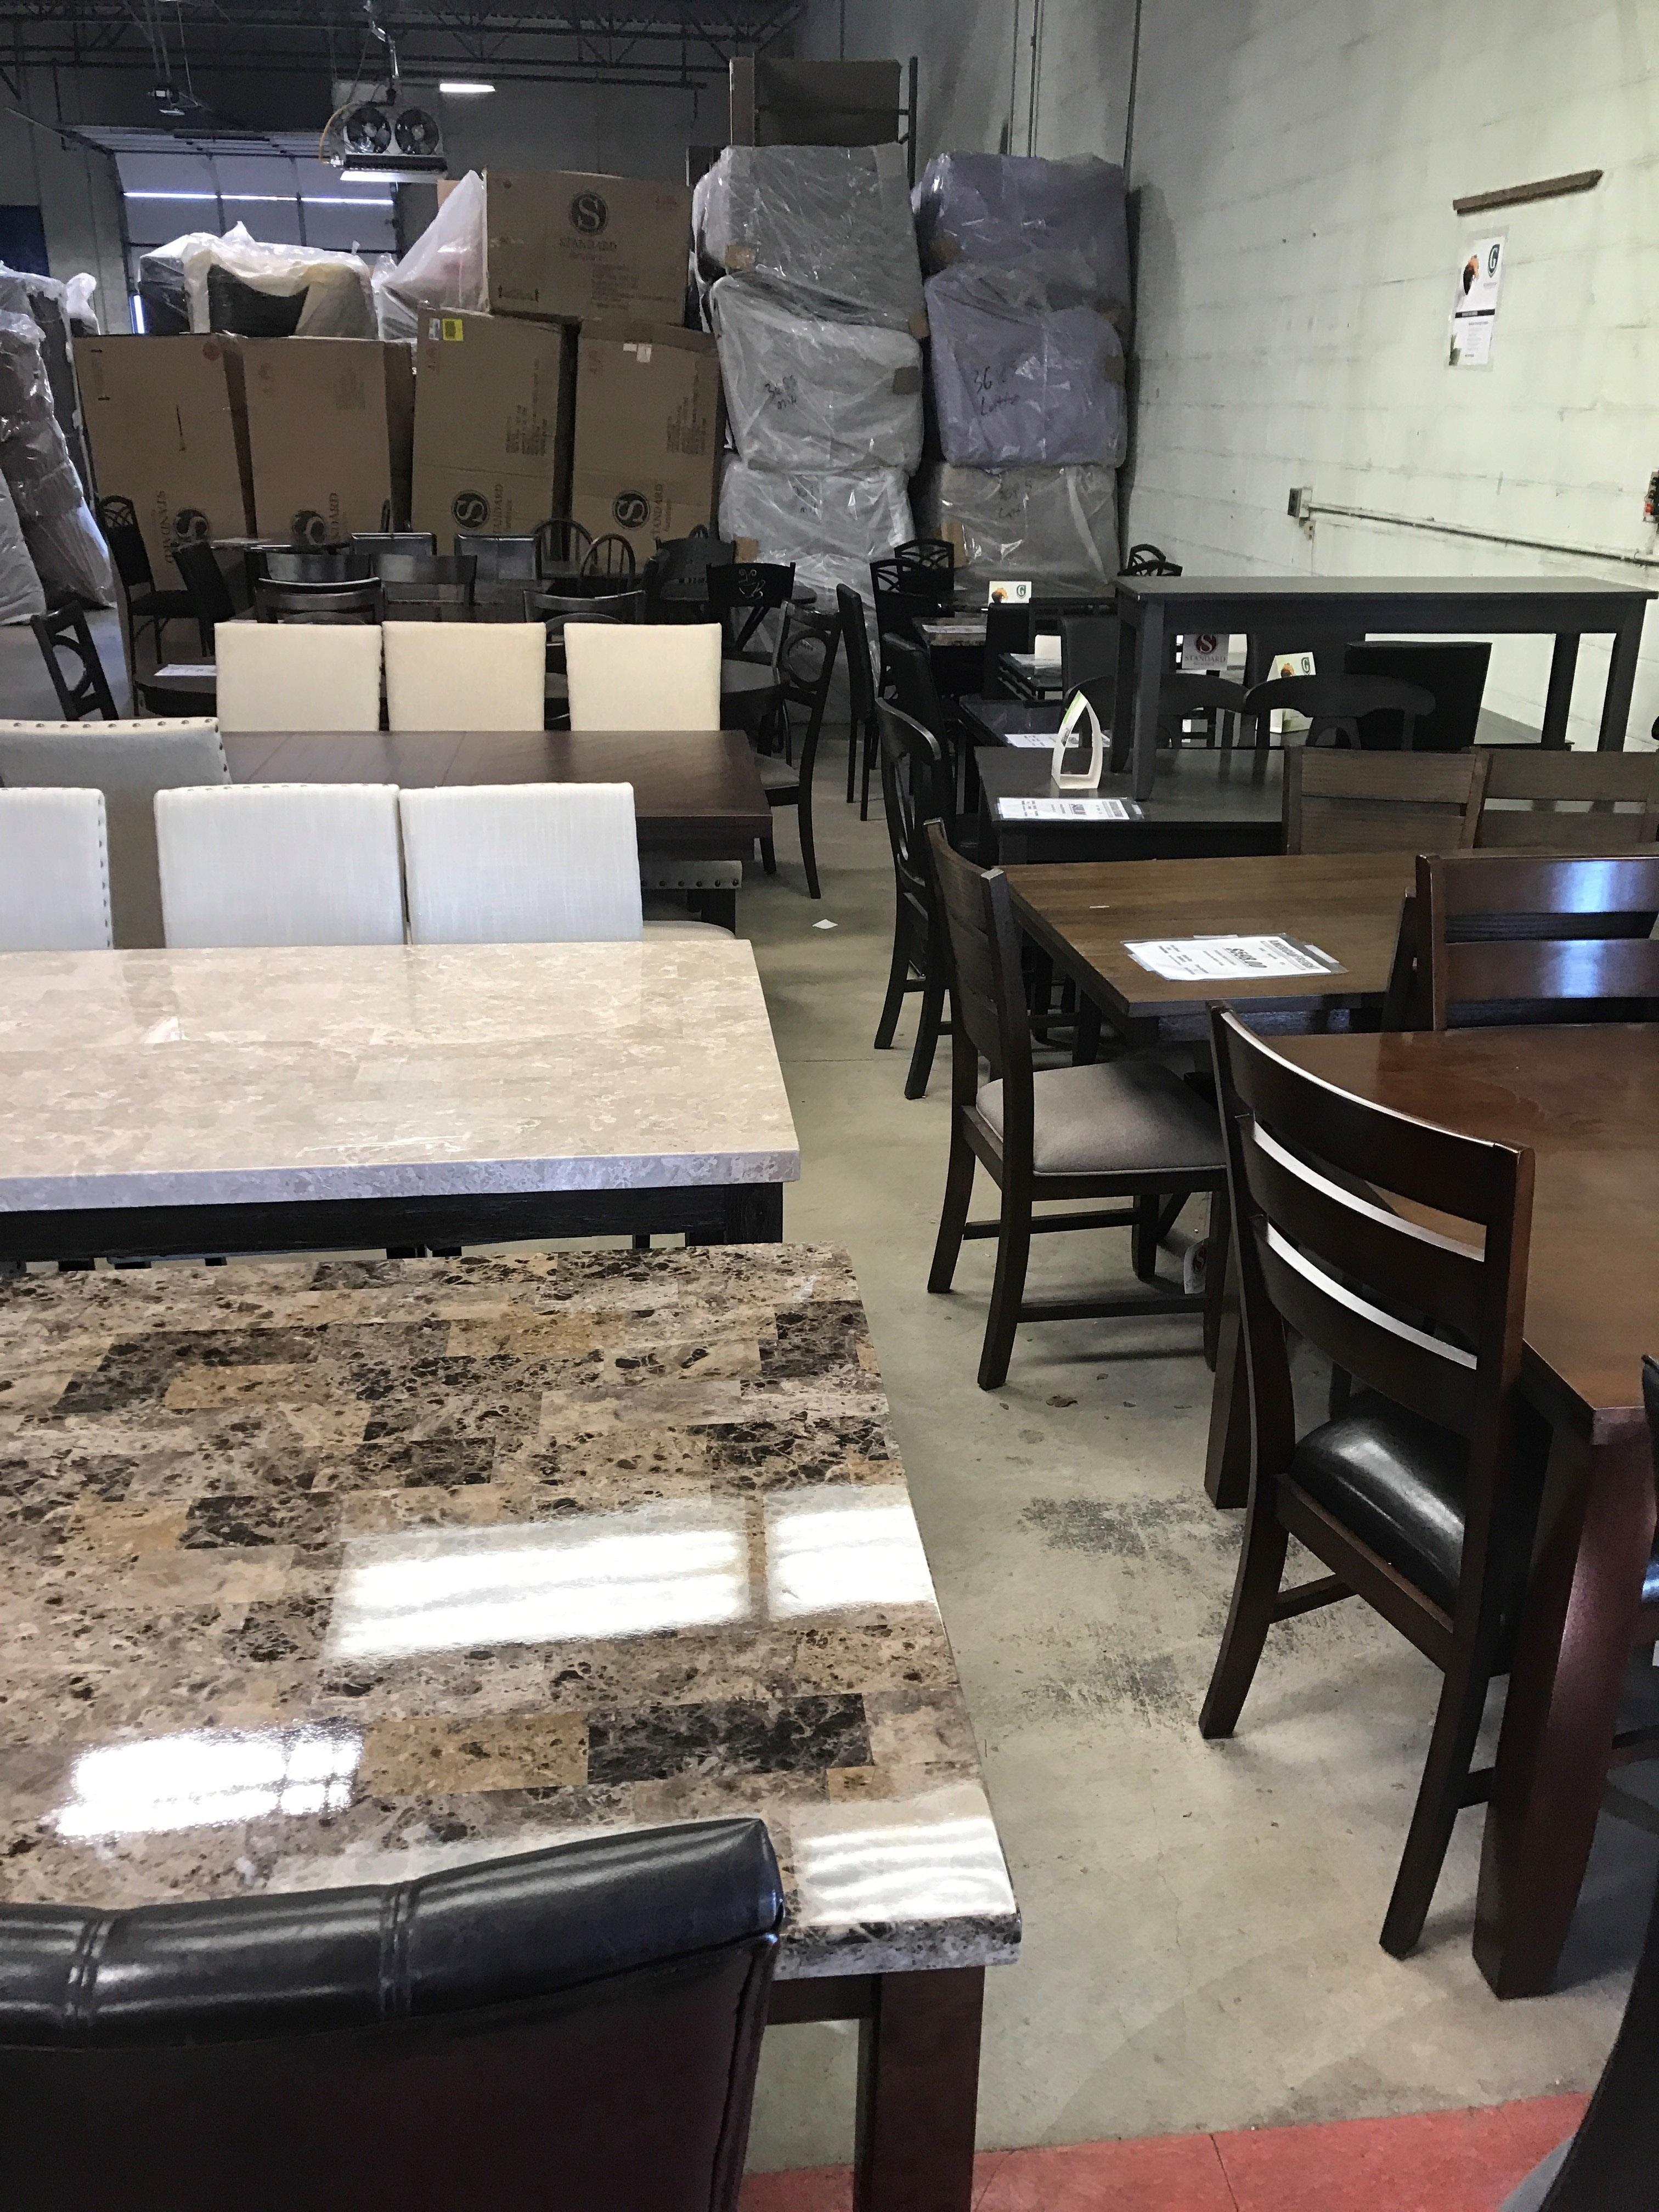 Livonia Furniture Stores American Freight Furniture And Mattress Livonia Michigan